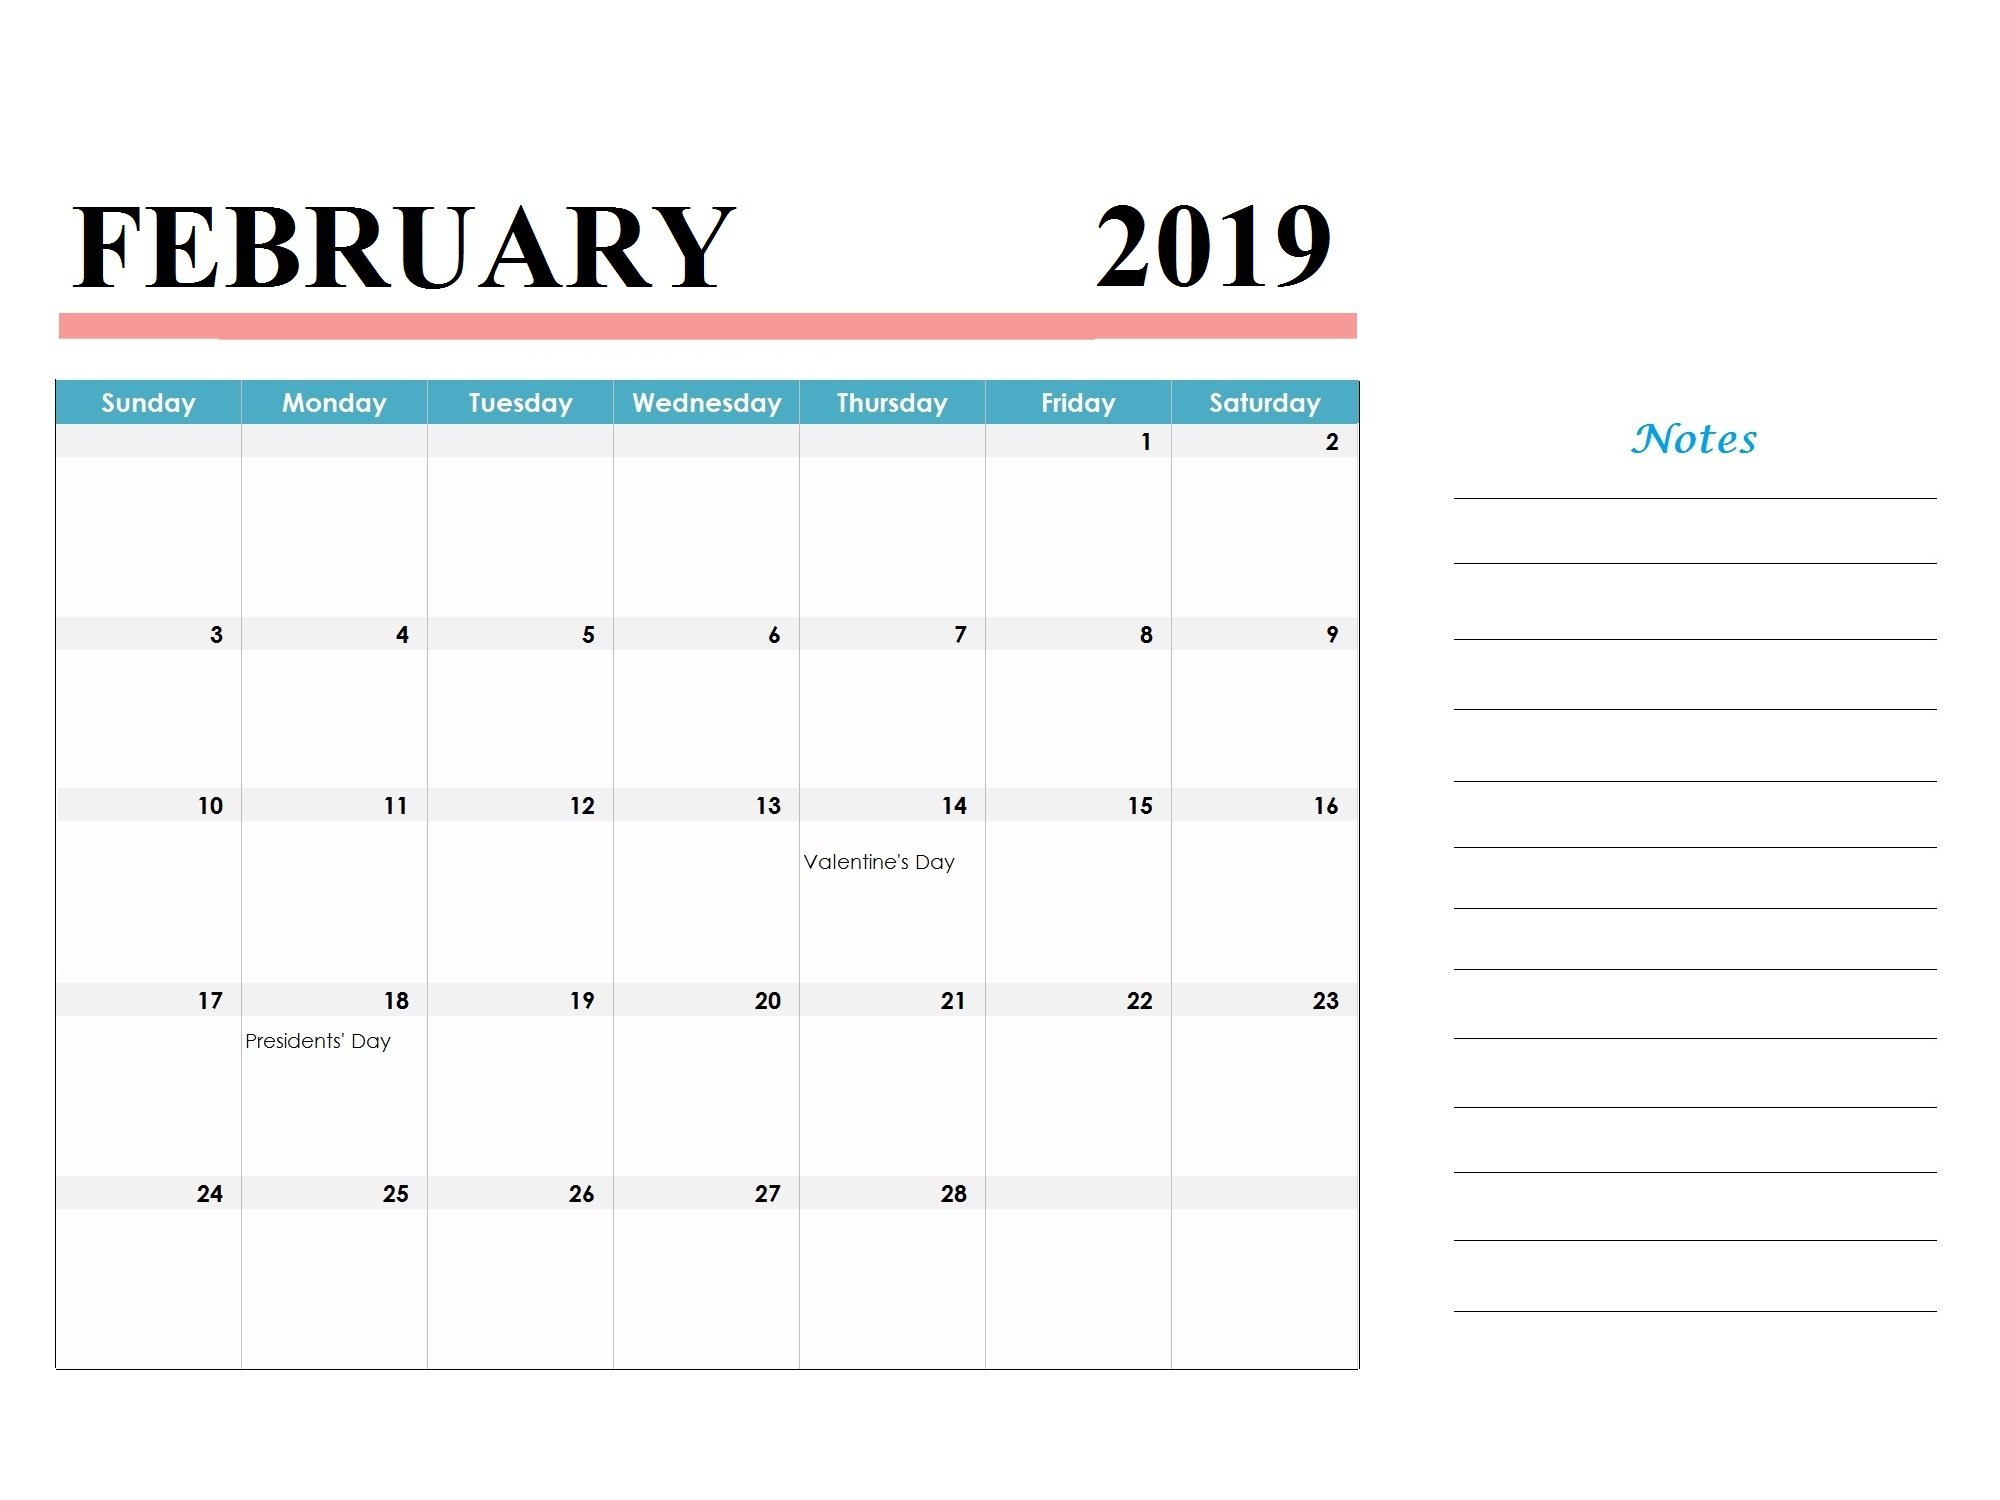 February 2019 Holidays Calendar Template